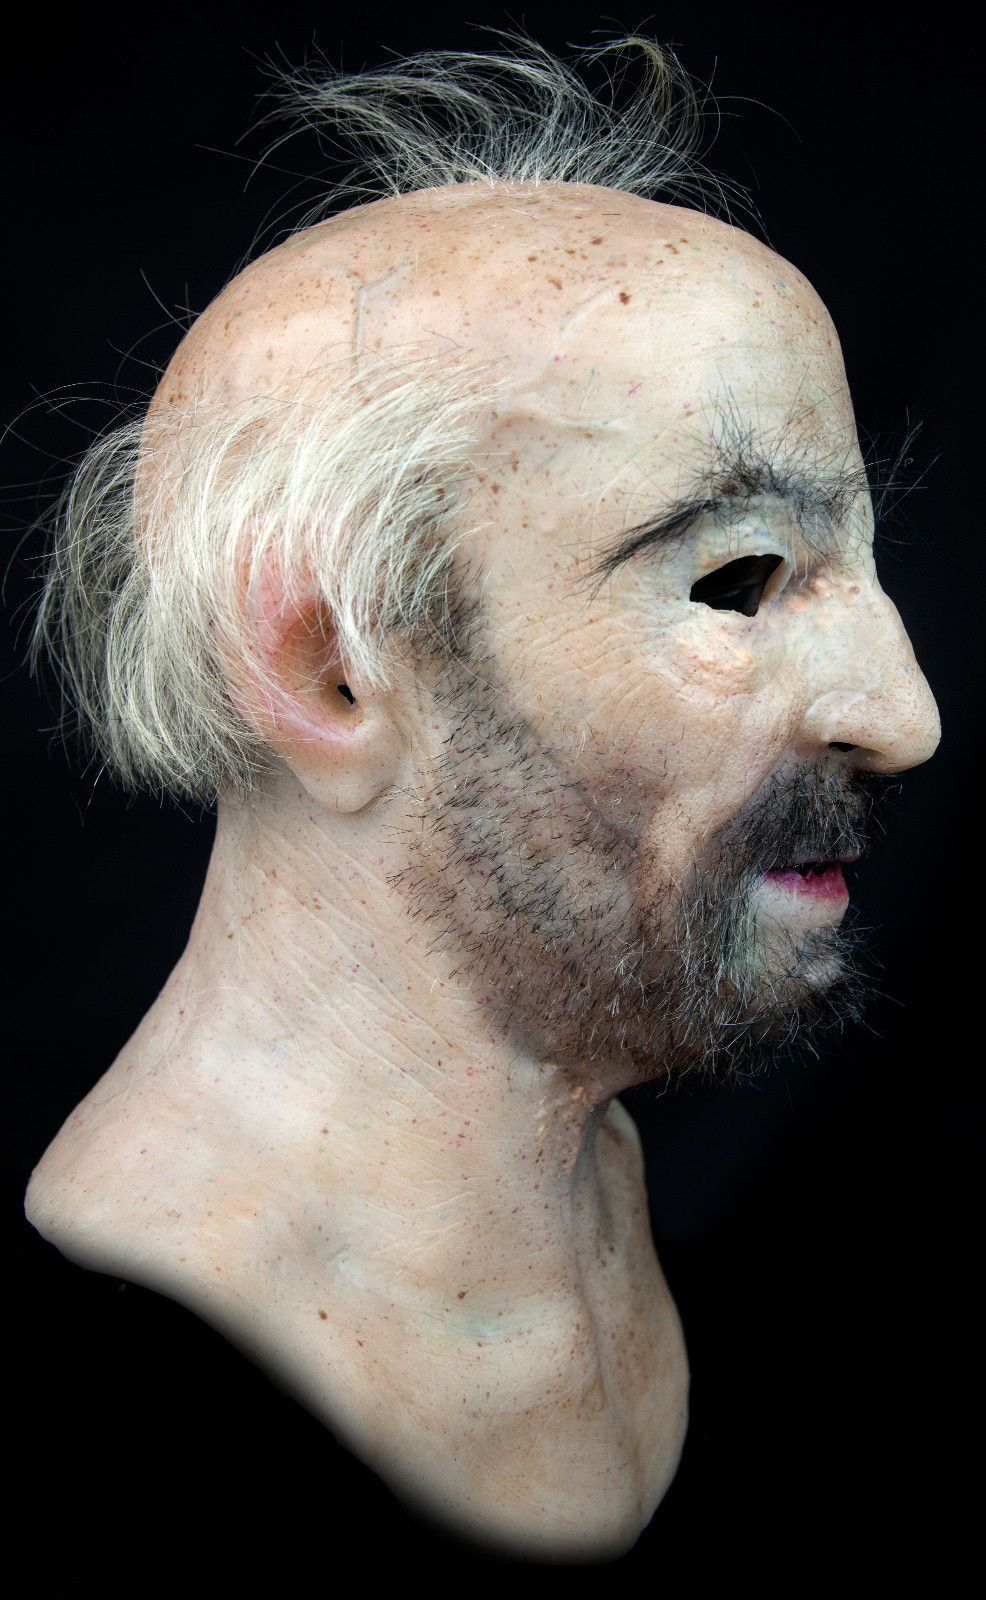 Details about Silicone Mask Old Man